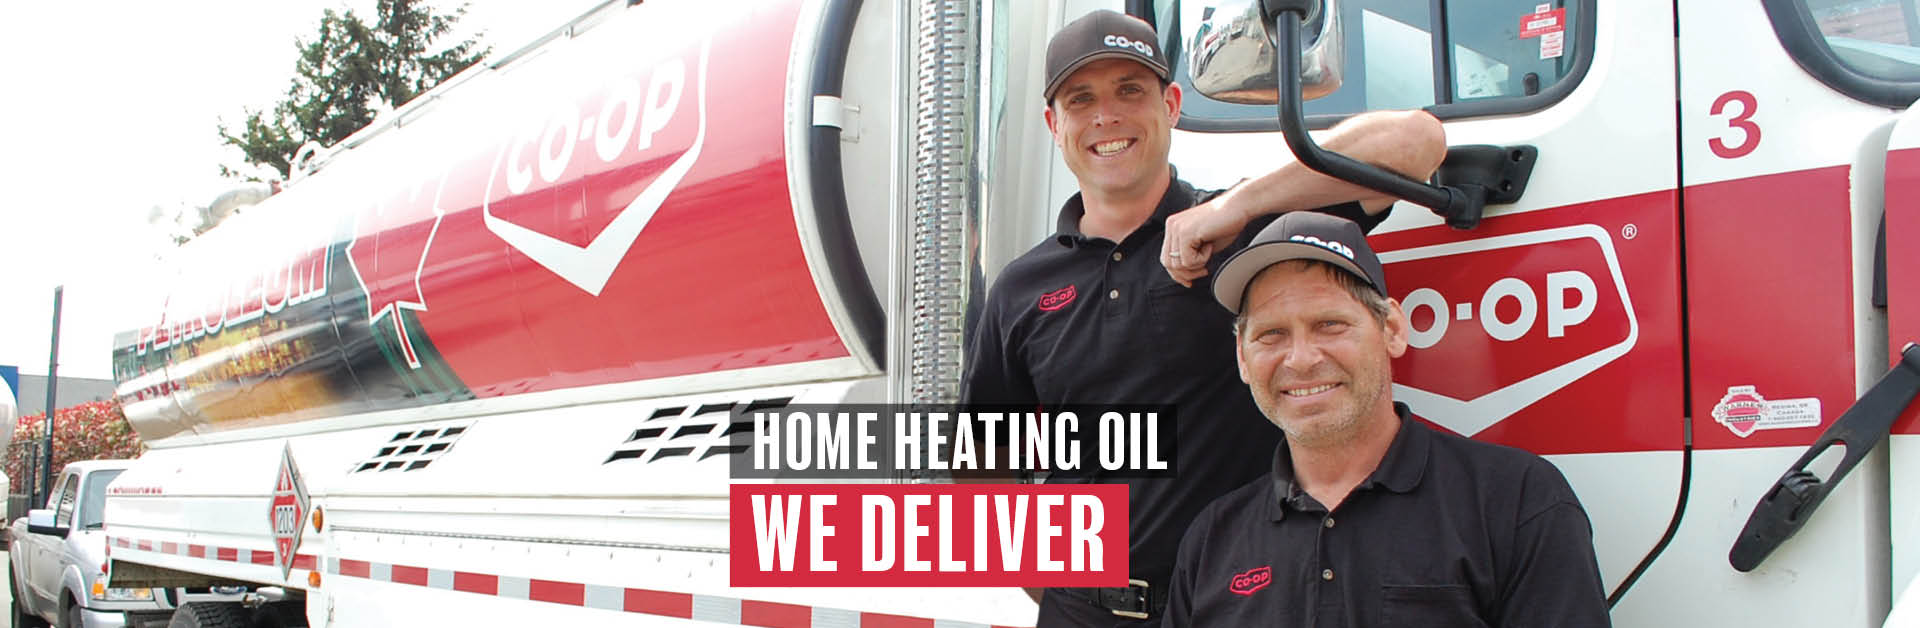 Home Heating Delivery Form - Furnance Oil